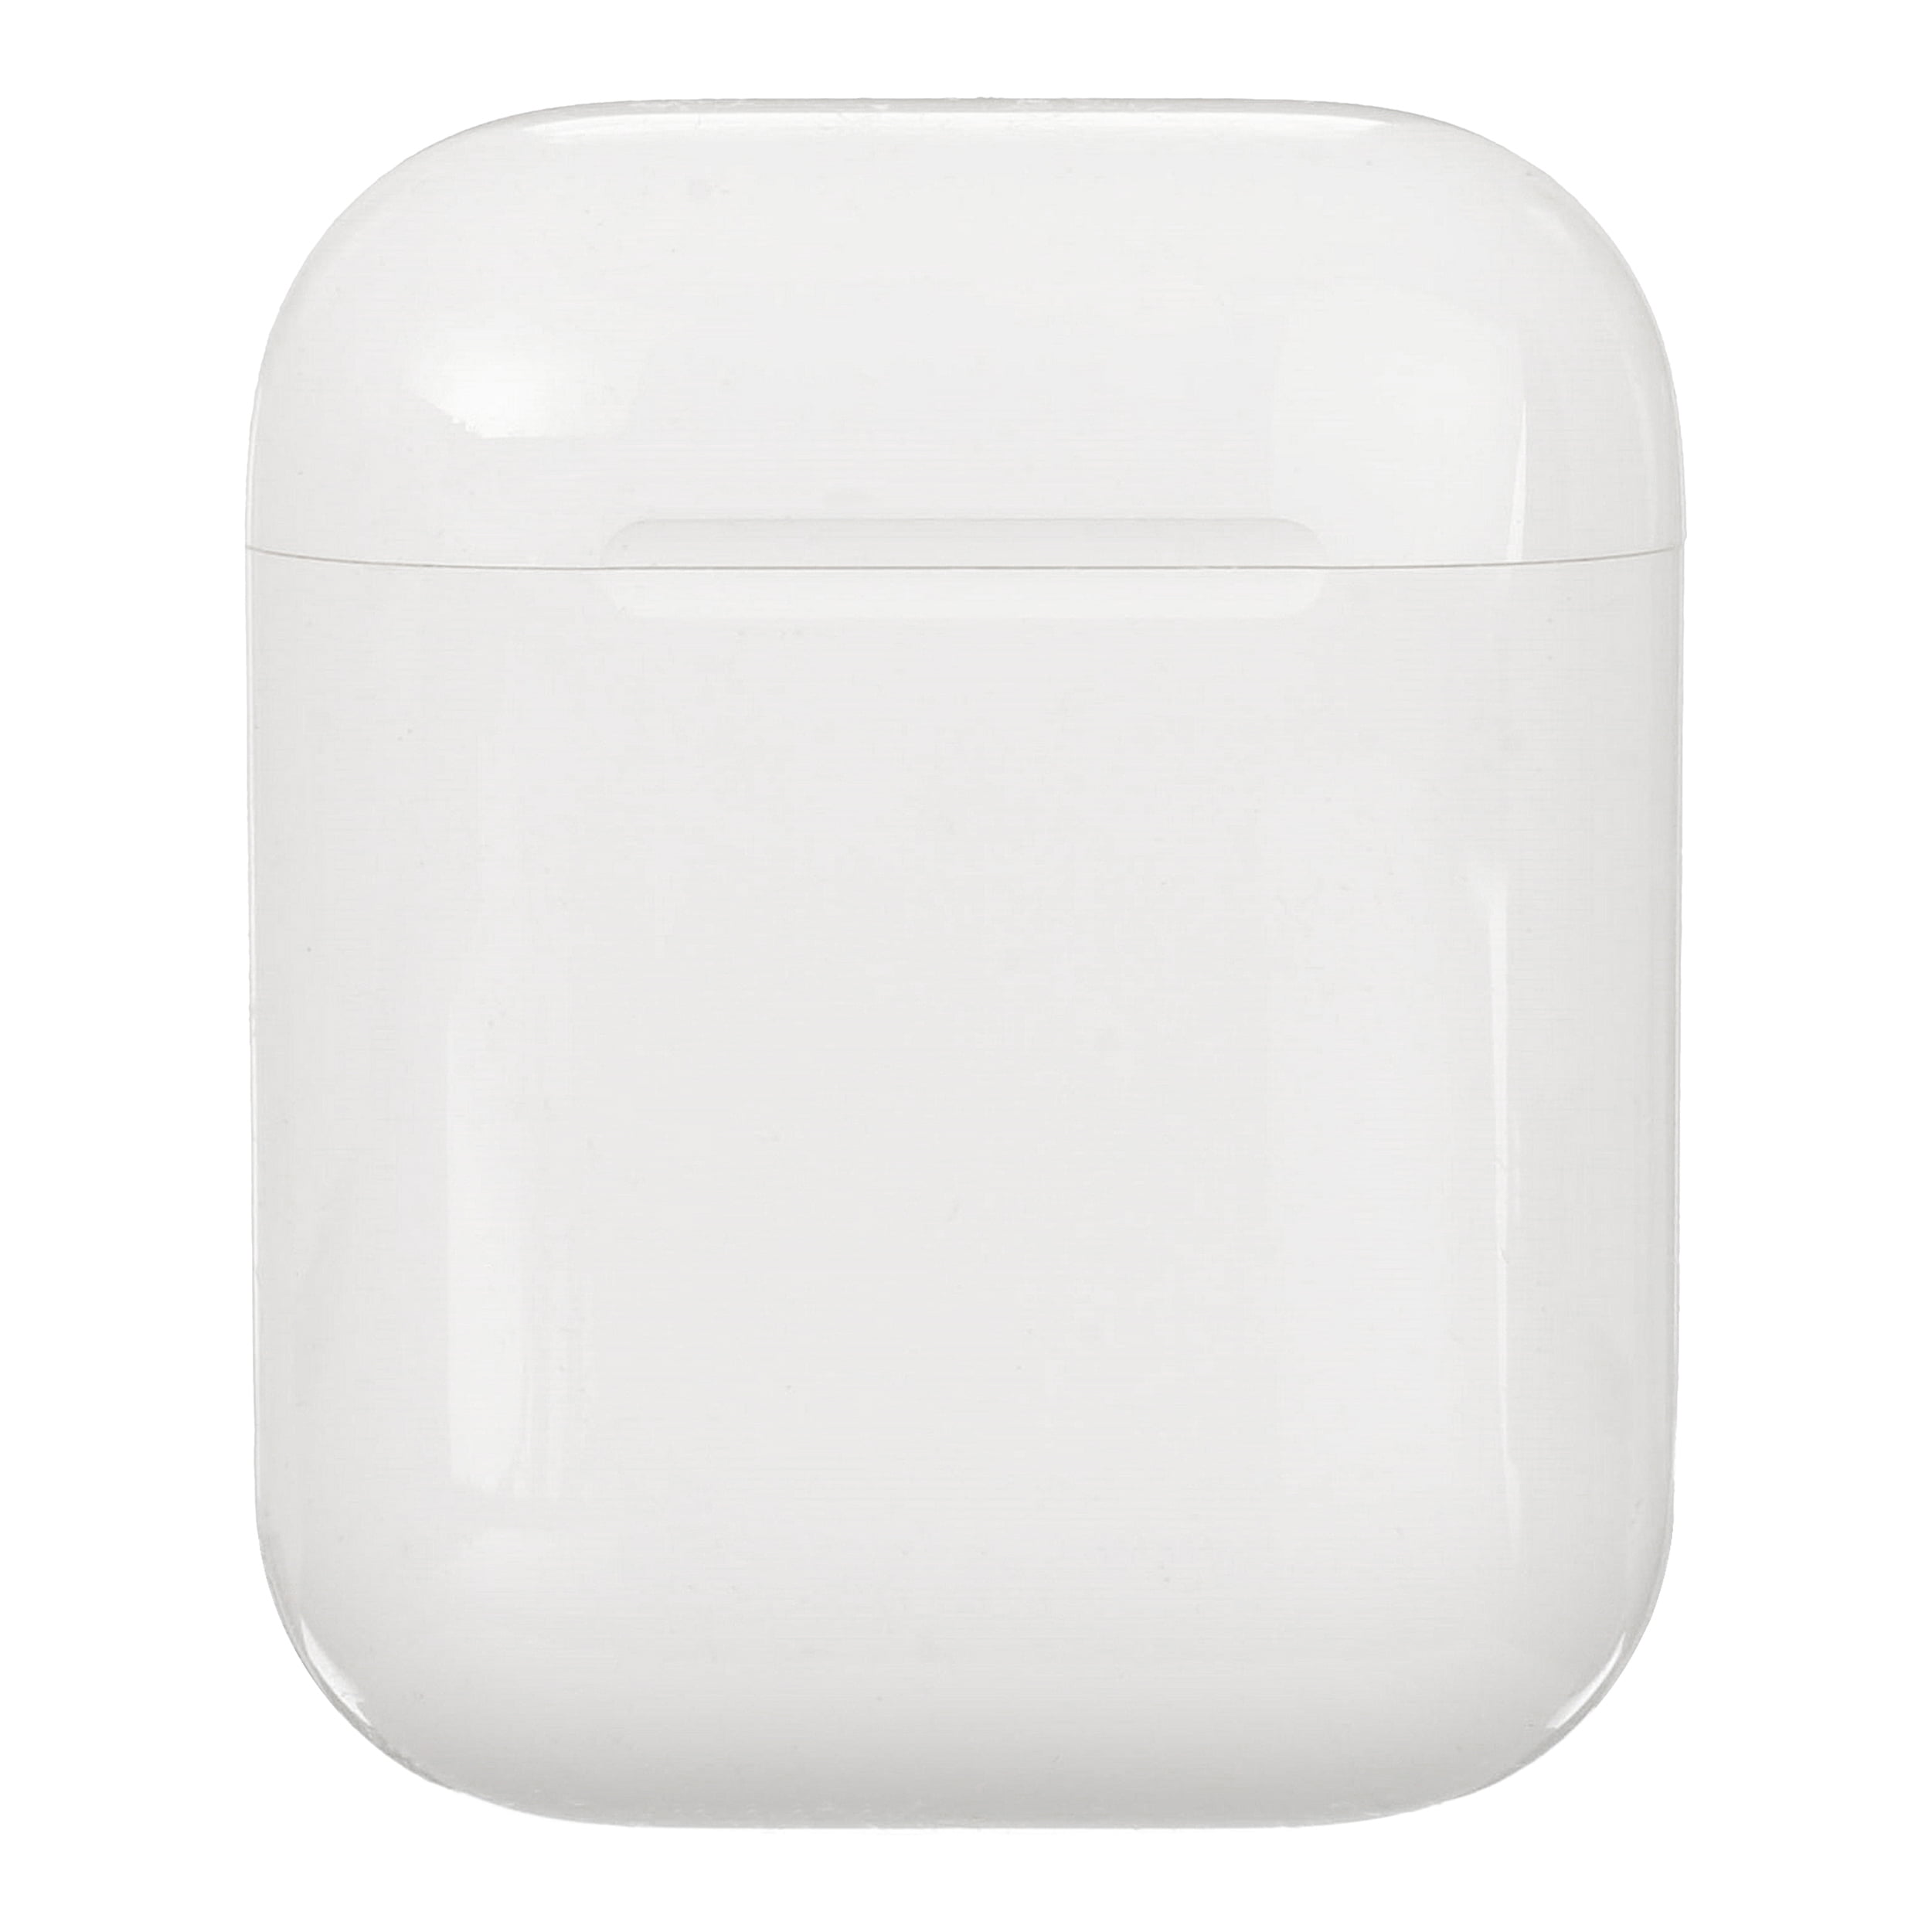 Used Apple Airpods With Charging Case Latest Model White Grade B Comes With Box And Accessories Walmart Com Walmart Com